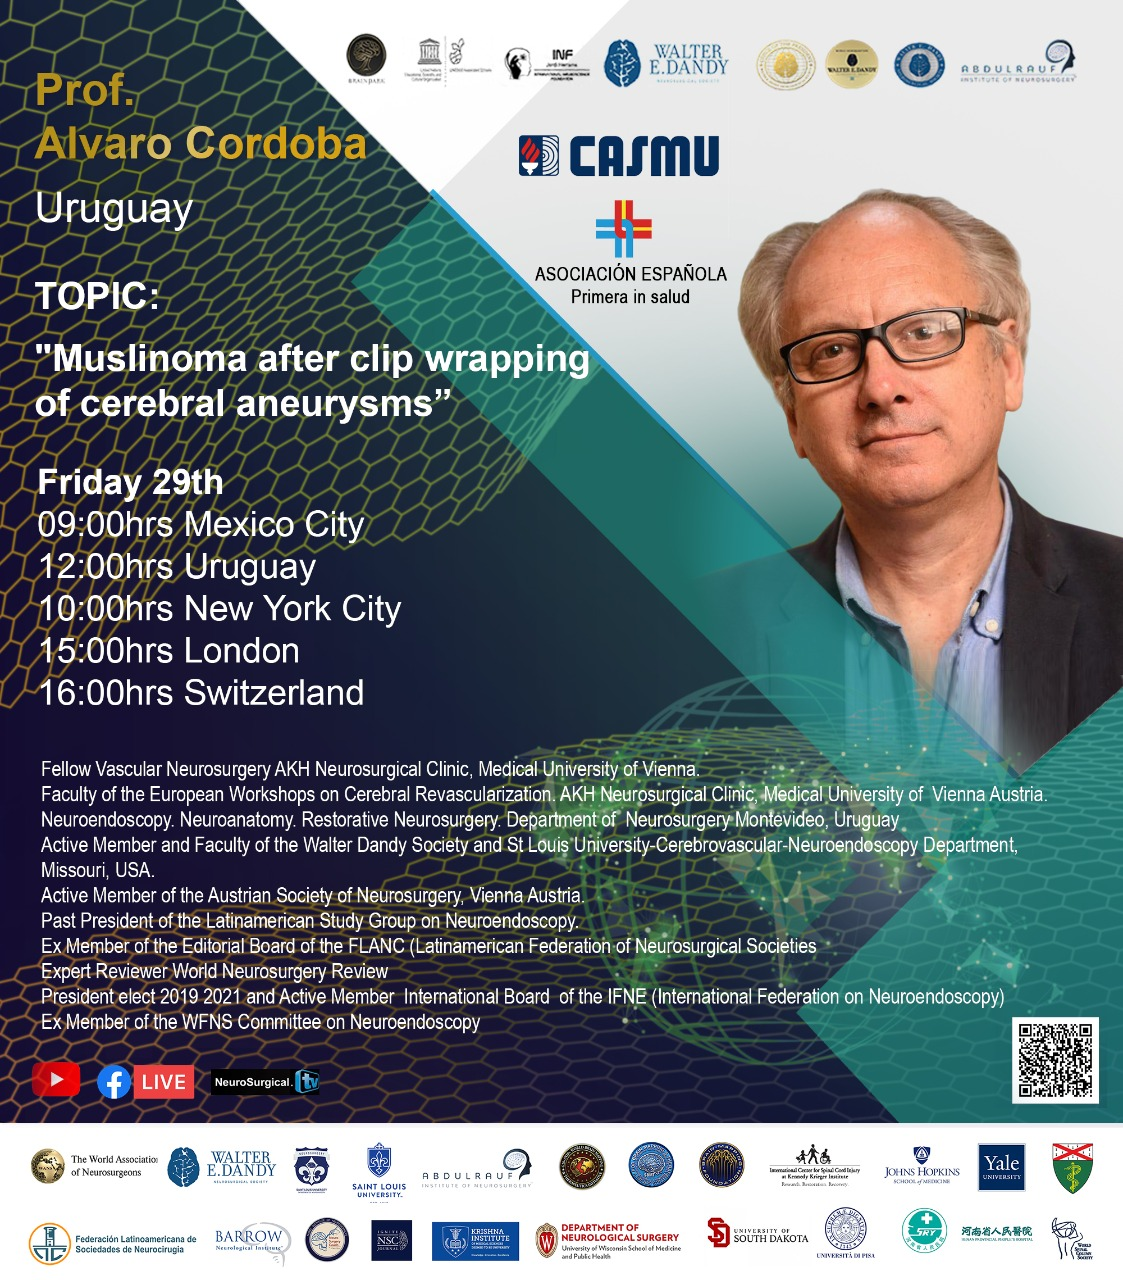 """NOW LIVE LIVE…………….UNESCO/Walter Dandy Collaboration continues in Mexico, with Alvaro Cordoba MD, Argentina Neurosurgeon, Presenting """"Muslinoma after Clip Wrapping of Cerebral Aneuryms"""""""